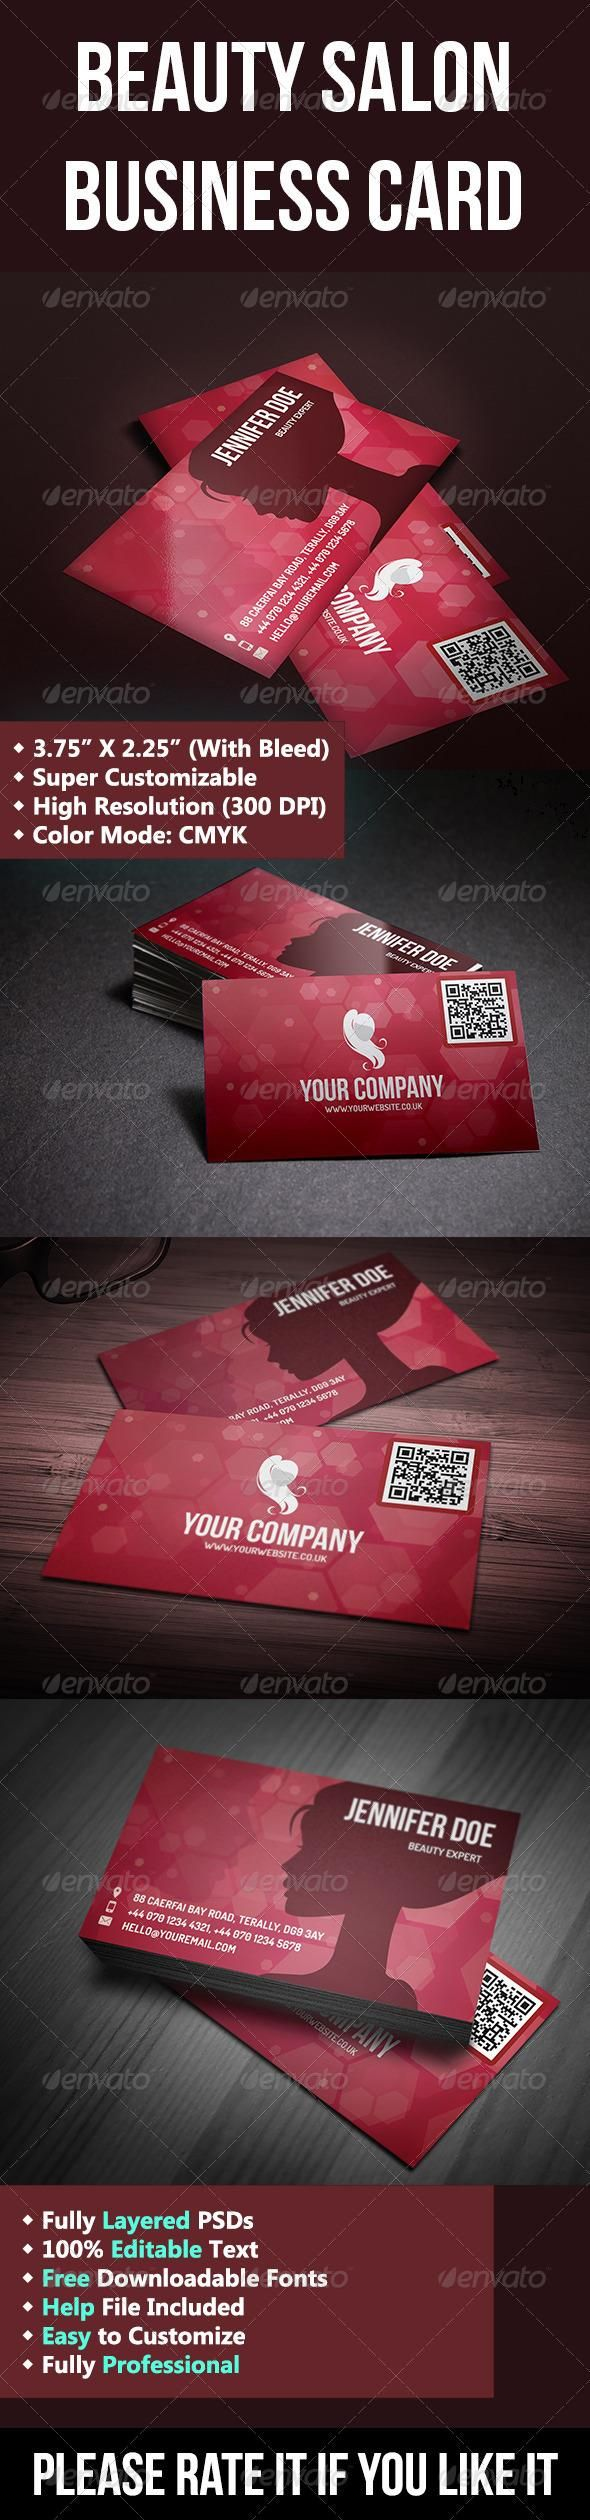 Beauty Salon Business Cards | Unlimitedgamers.co